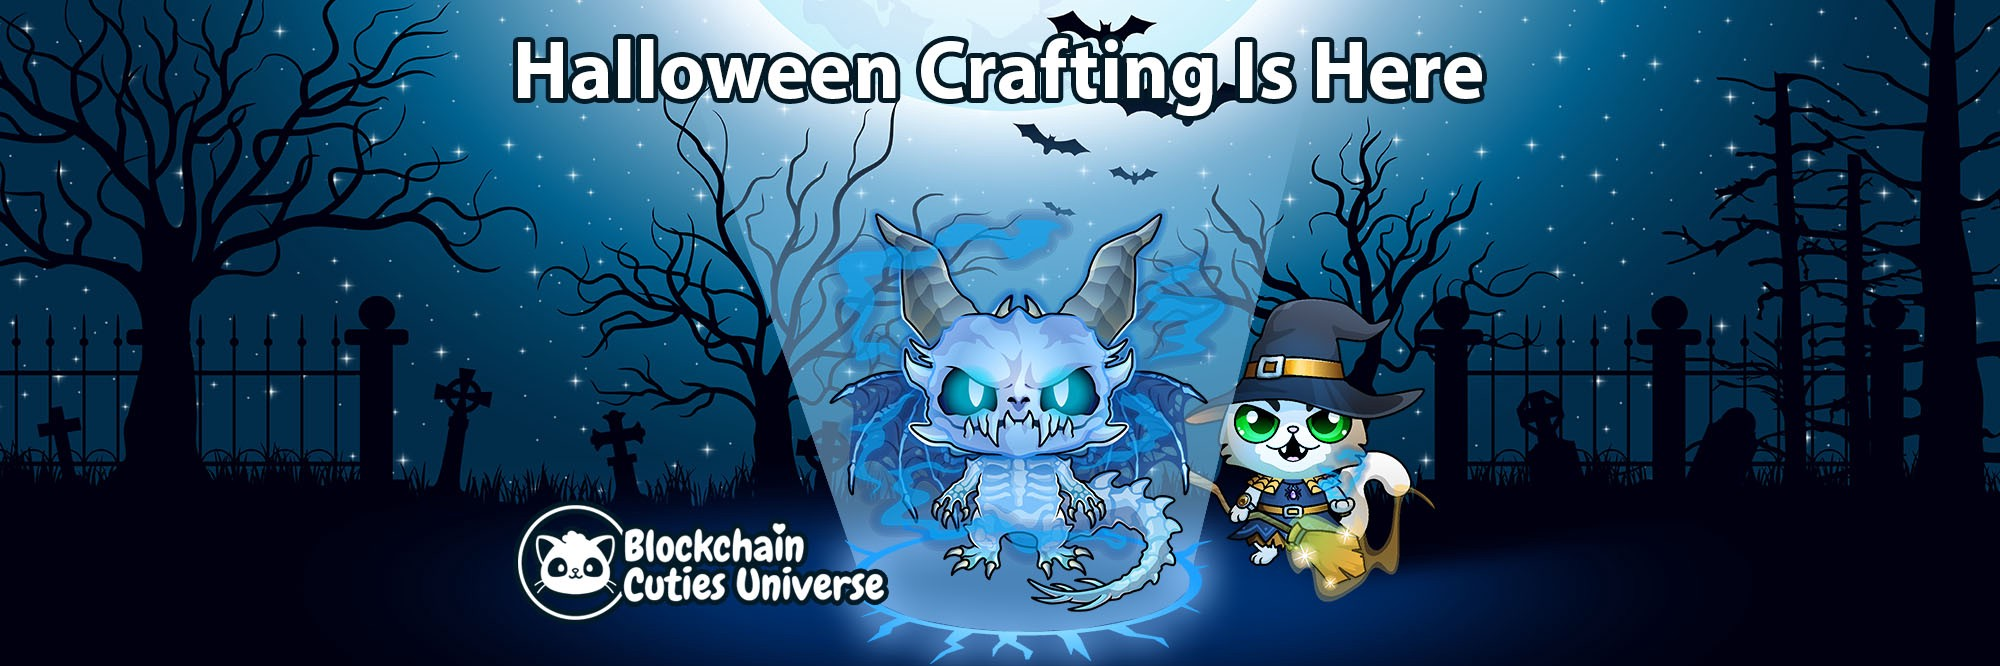 Craft Awesome Gear From Dragon Bones!